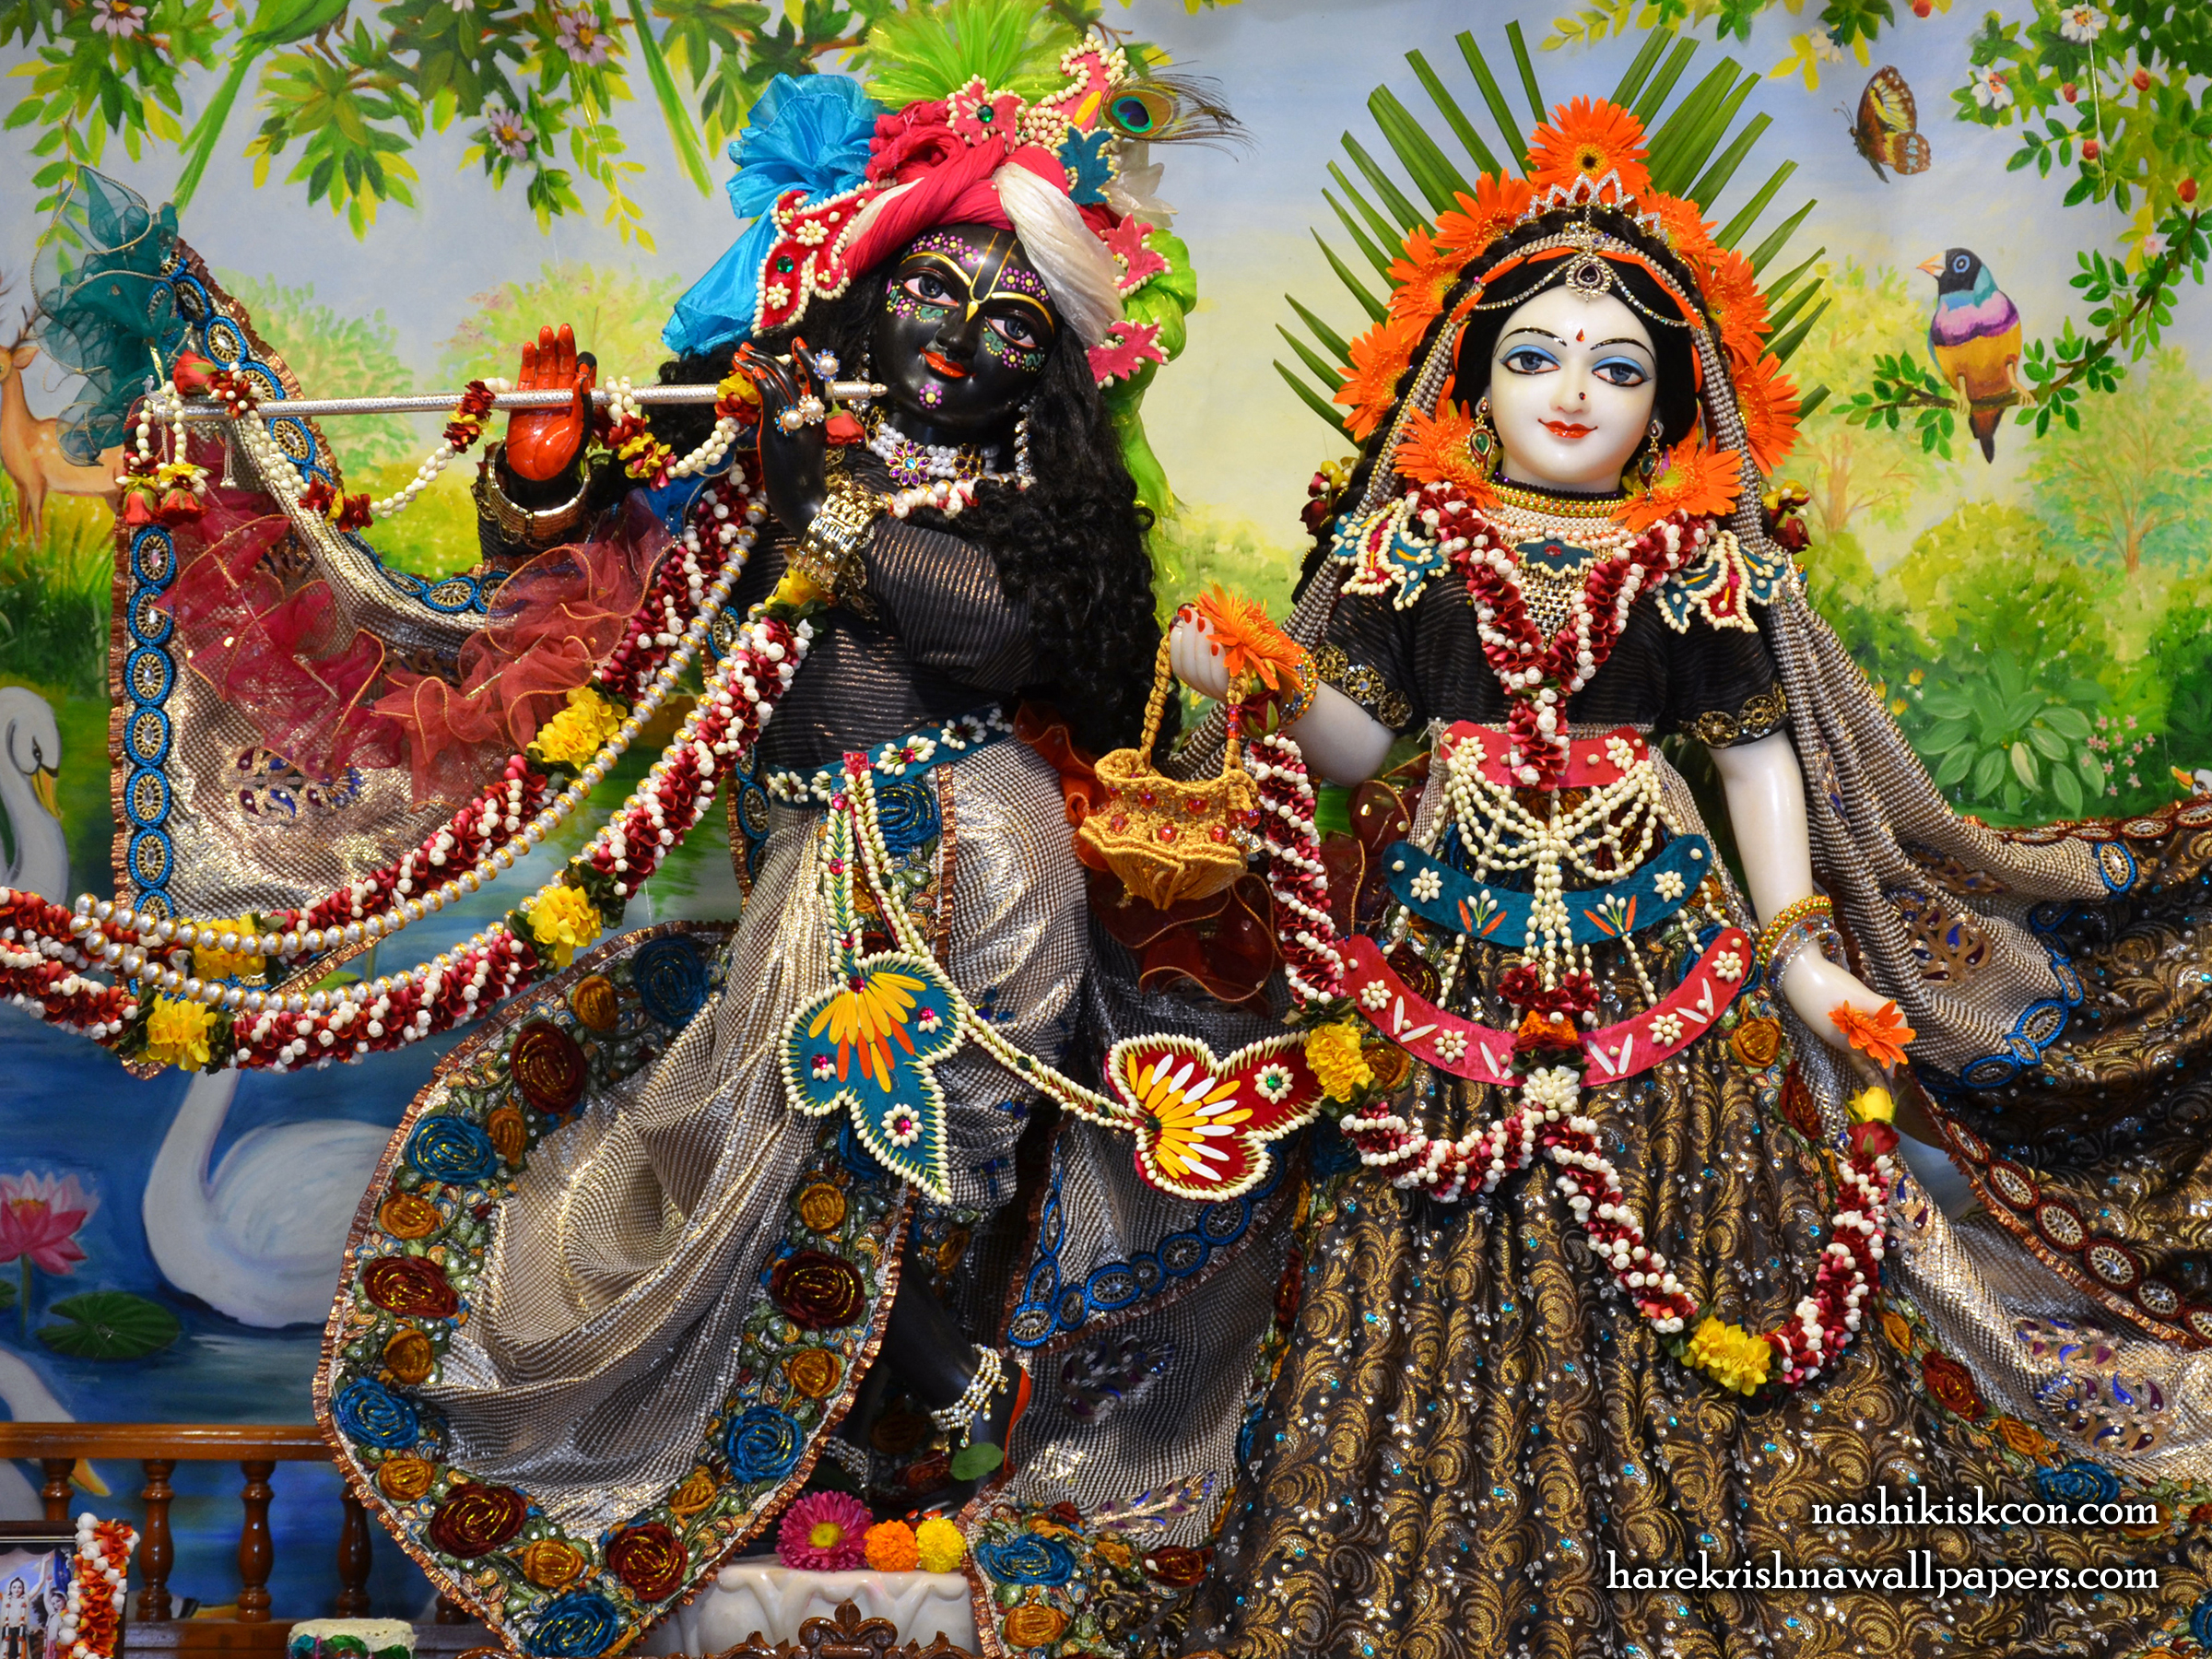 Sri Sri Radha Madan Gopal Wallpaper (005) Size 2400x1800 Download